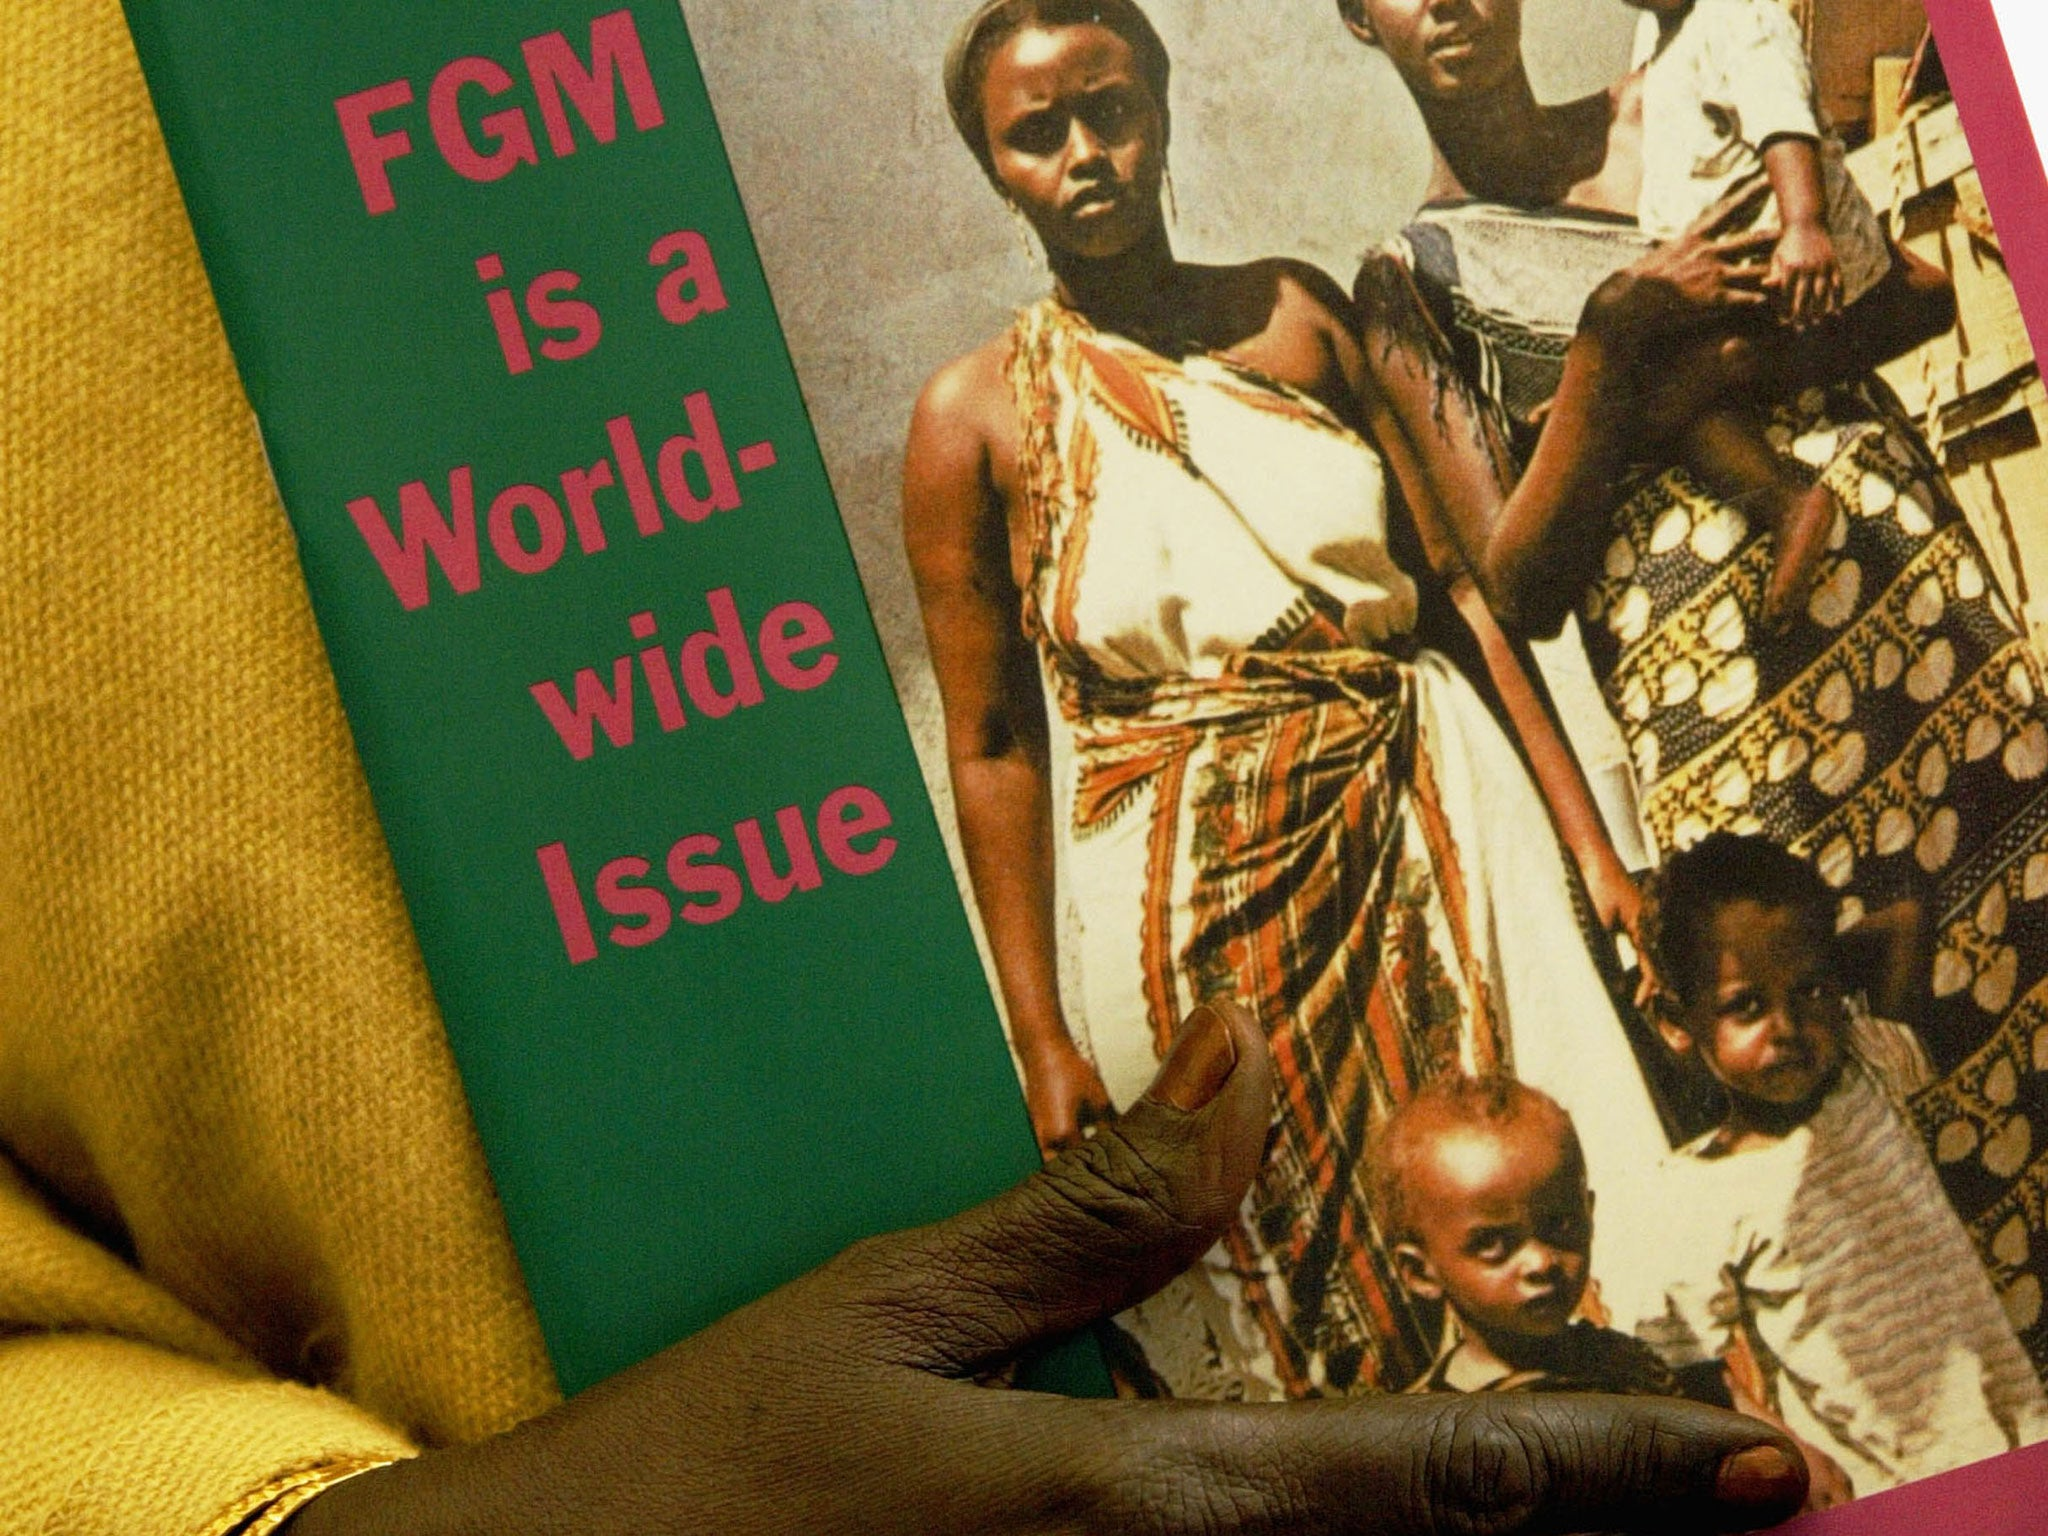 an argument against female genitalia mutilation in africa 27032017  female genital mutilation should be recognised as a form  the cutting of female genitalia  of torture is often an argument against fgm.